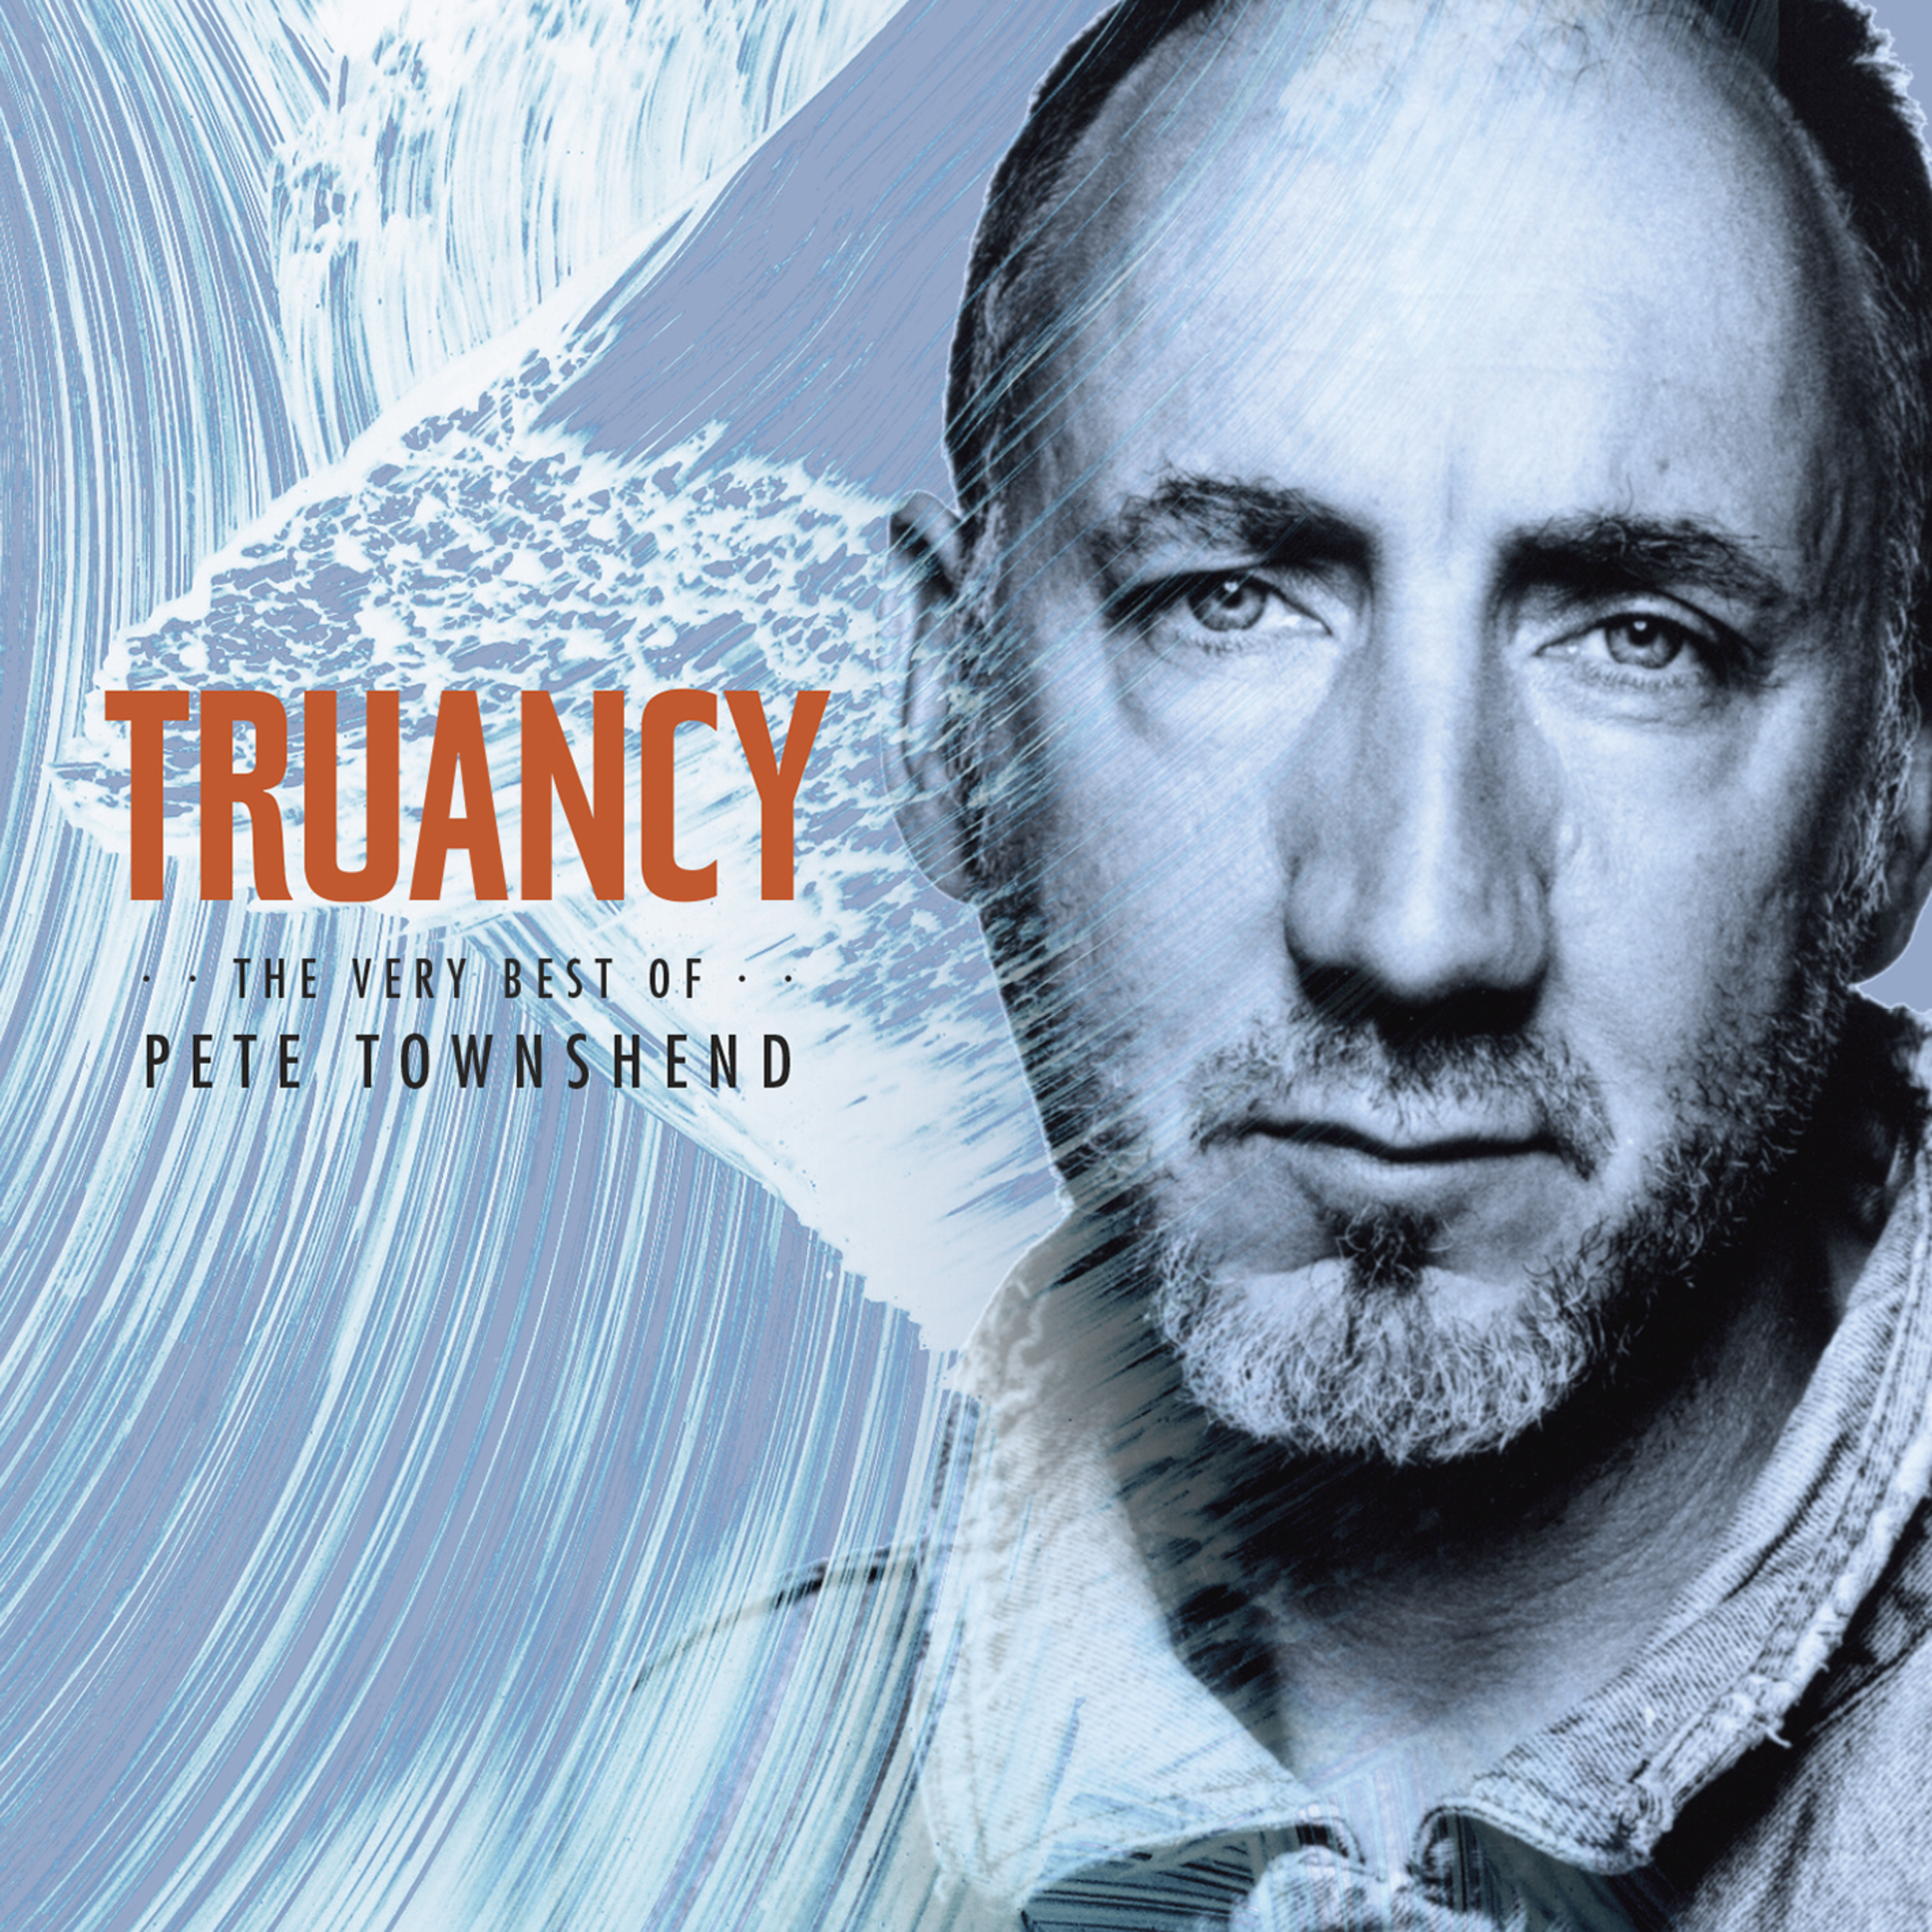 """""""Truancy: The Very Best Of Pete Townshend"""" (Ume) featuring two brand new songs released June 30"""